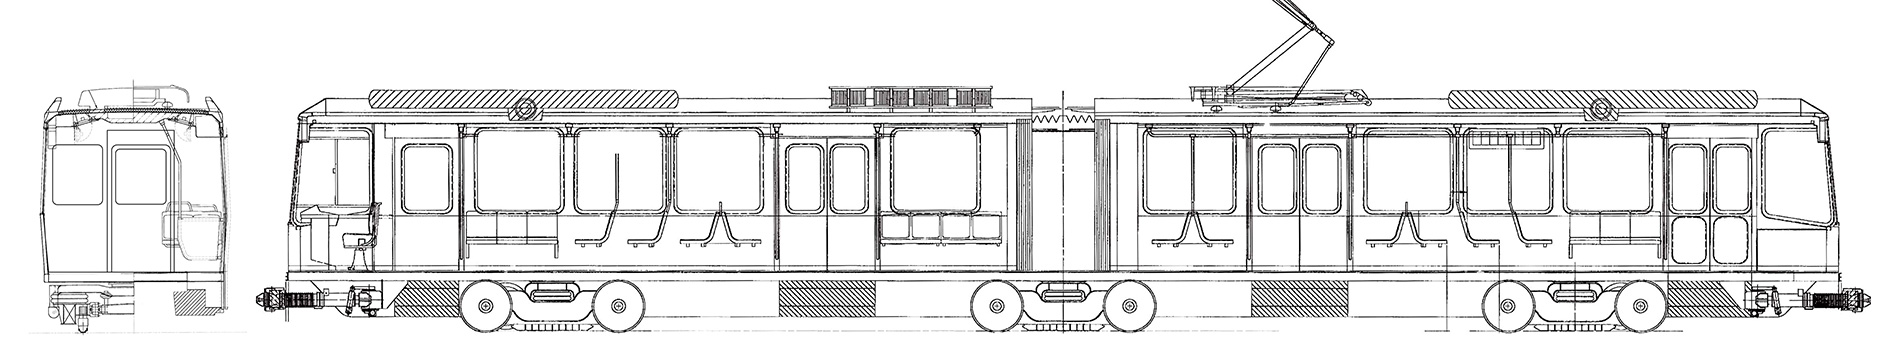 Drawn railroad metro train I features realised several drawing